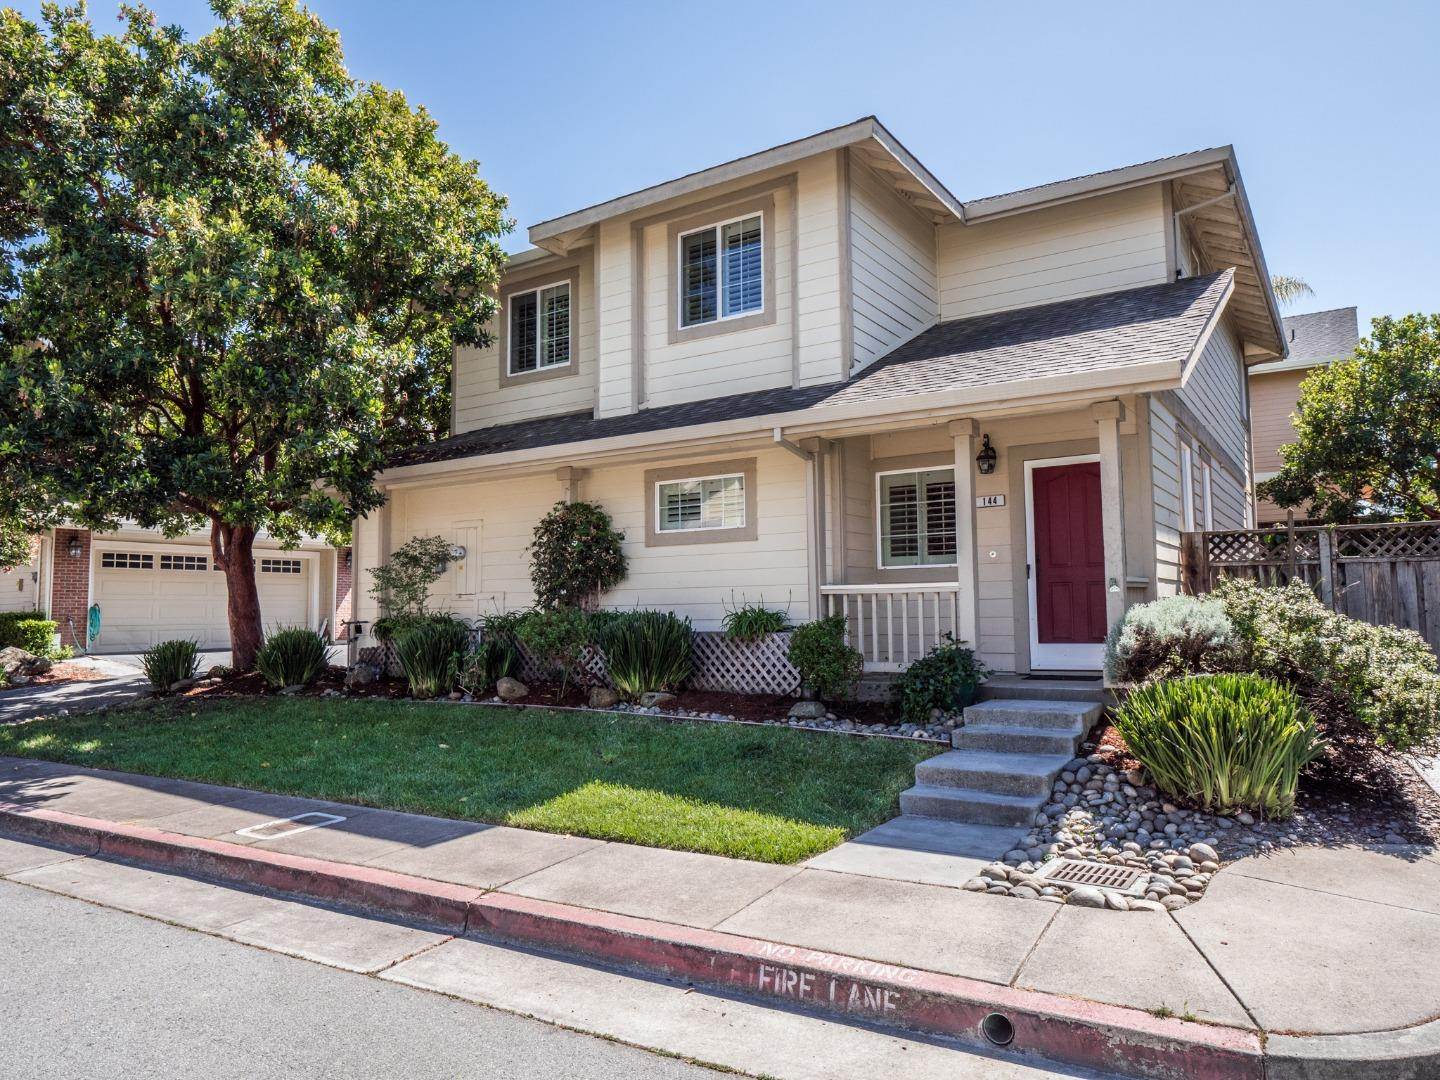 Just Listed in Freedom!  Come home to this turnkey, move in ready home on a quiet street close to shopping, restaurants and the Watsonville Airport.  Features include, high ceilings, versatile open floor-plan, fireplace, fenced back yard, two car attached garage, owned solar panels and much more!